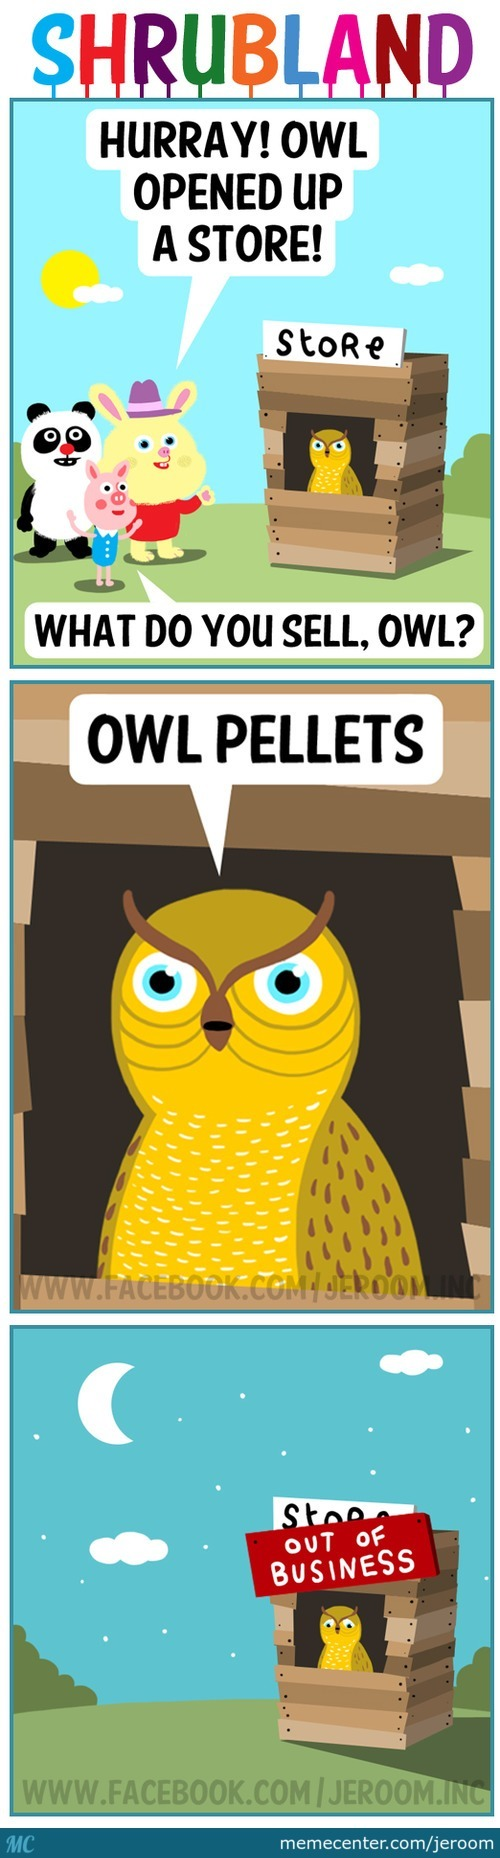 Hurray! Owl Opened Up A Store!